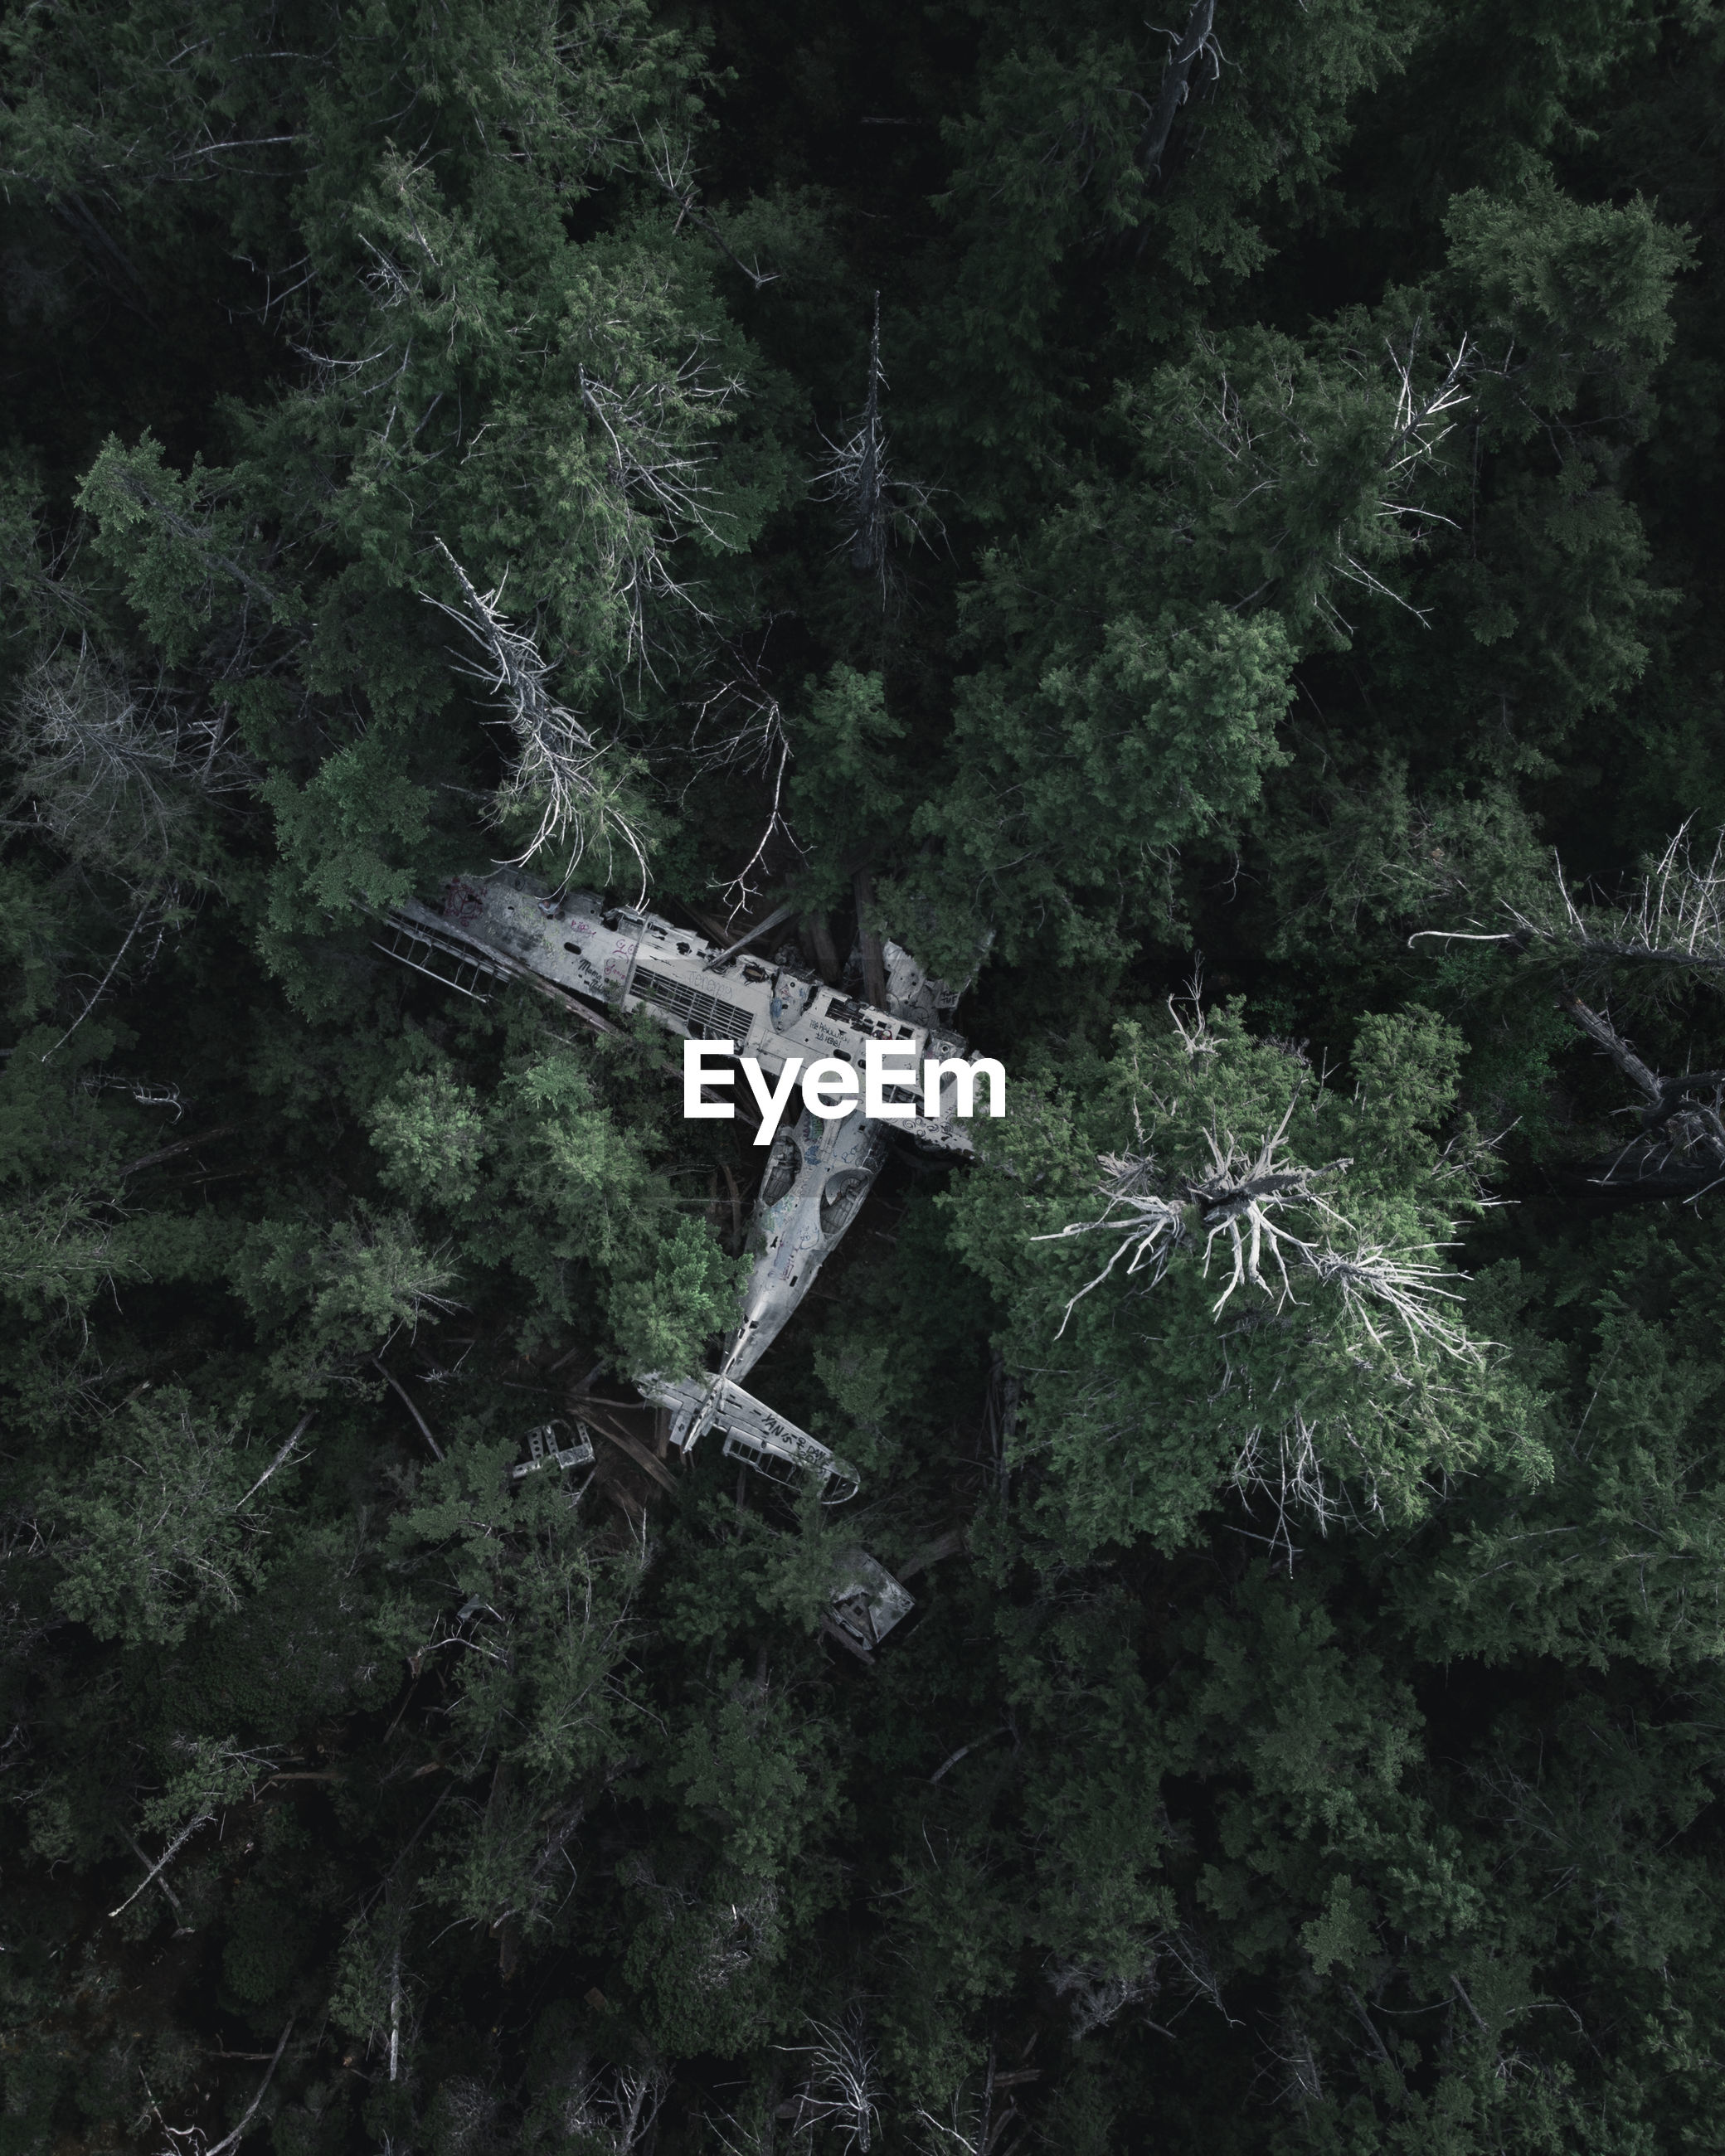 Aerial view of abandoned airplane amidst trees in forest